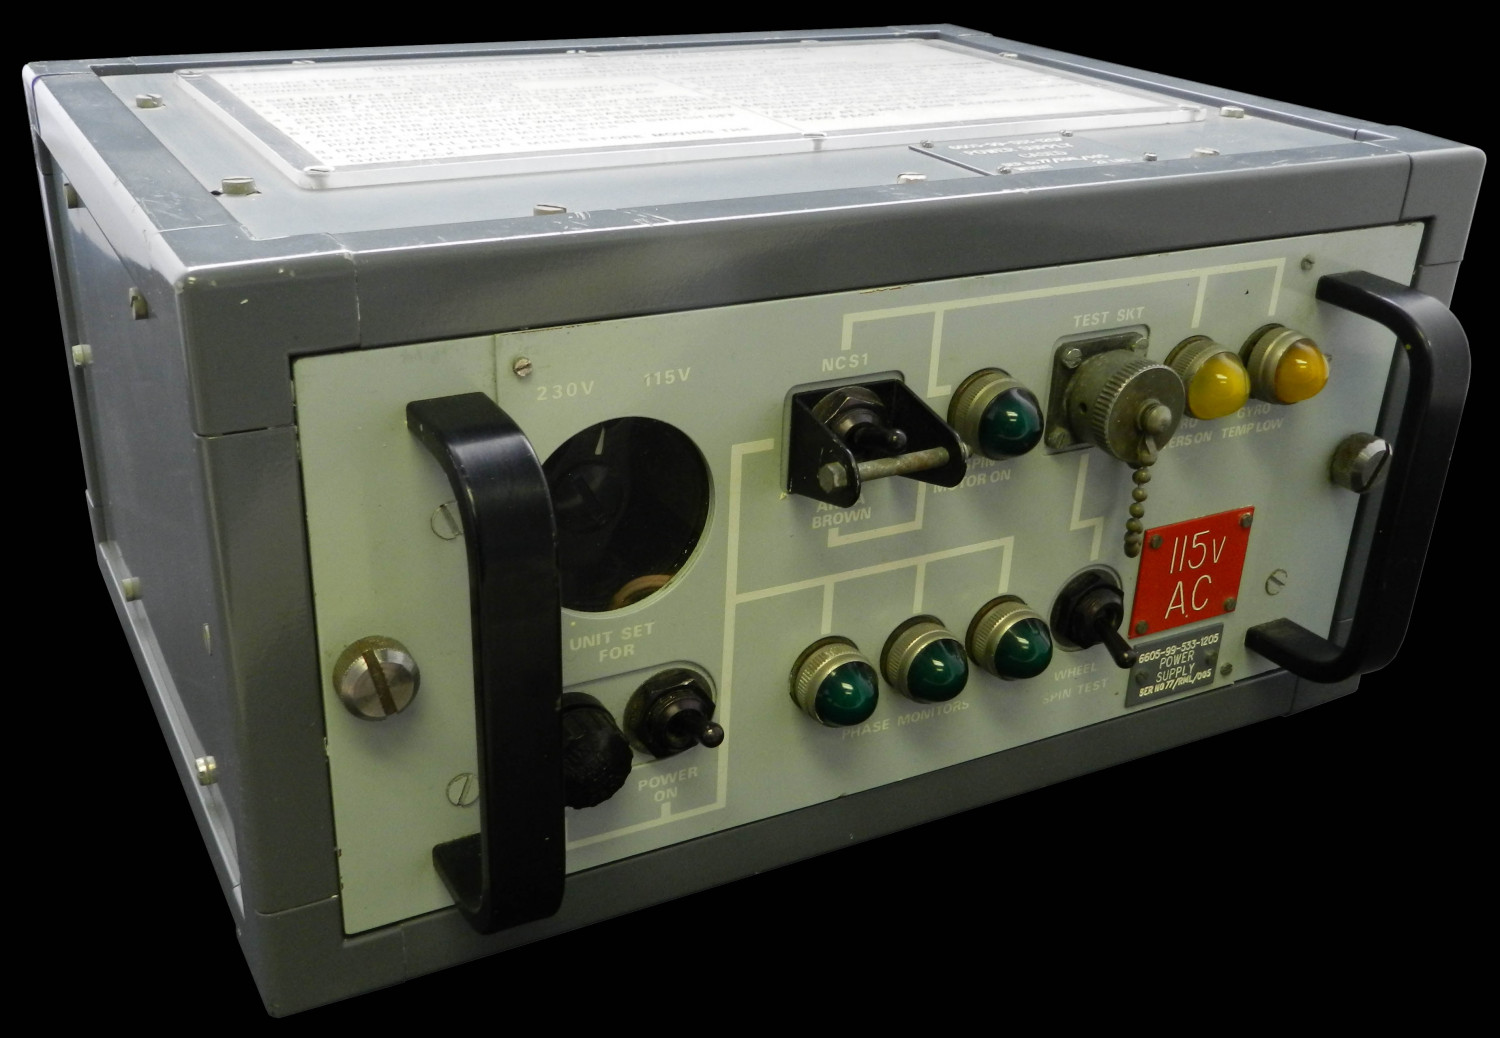 NCS1 Power Supply for Gyro Tests